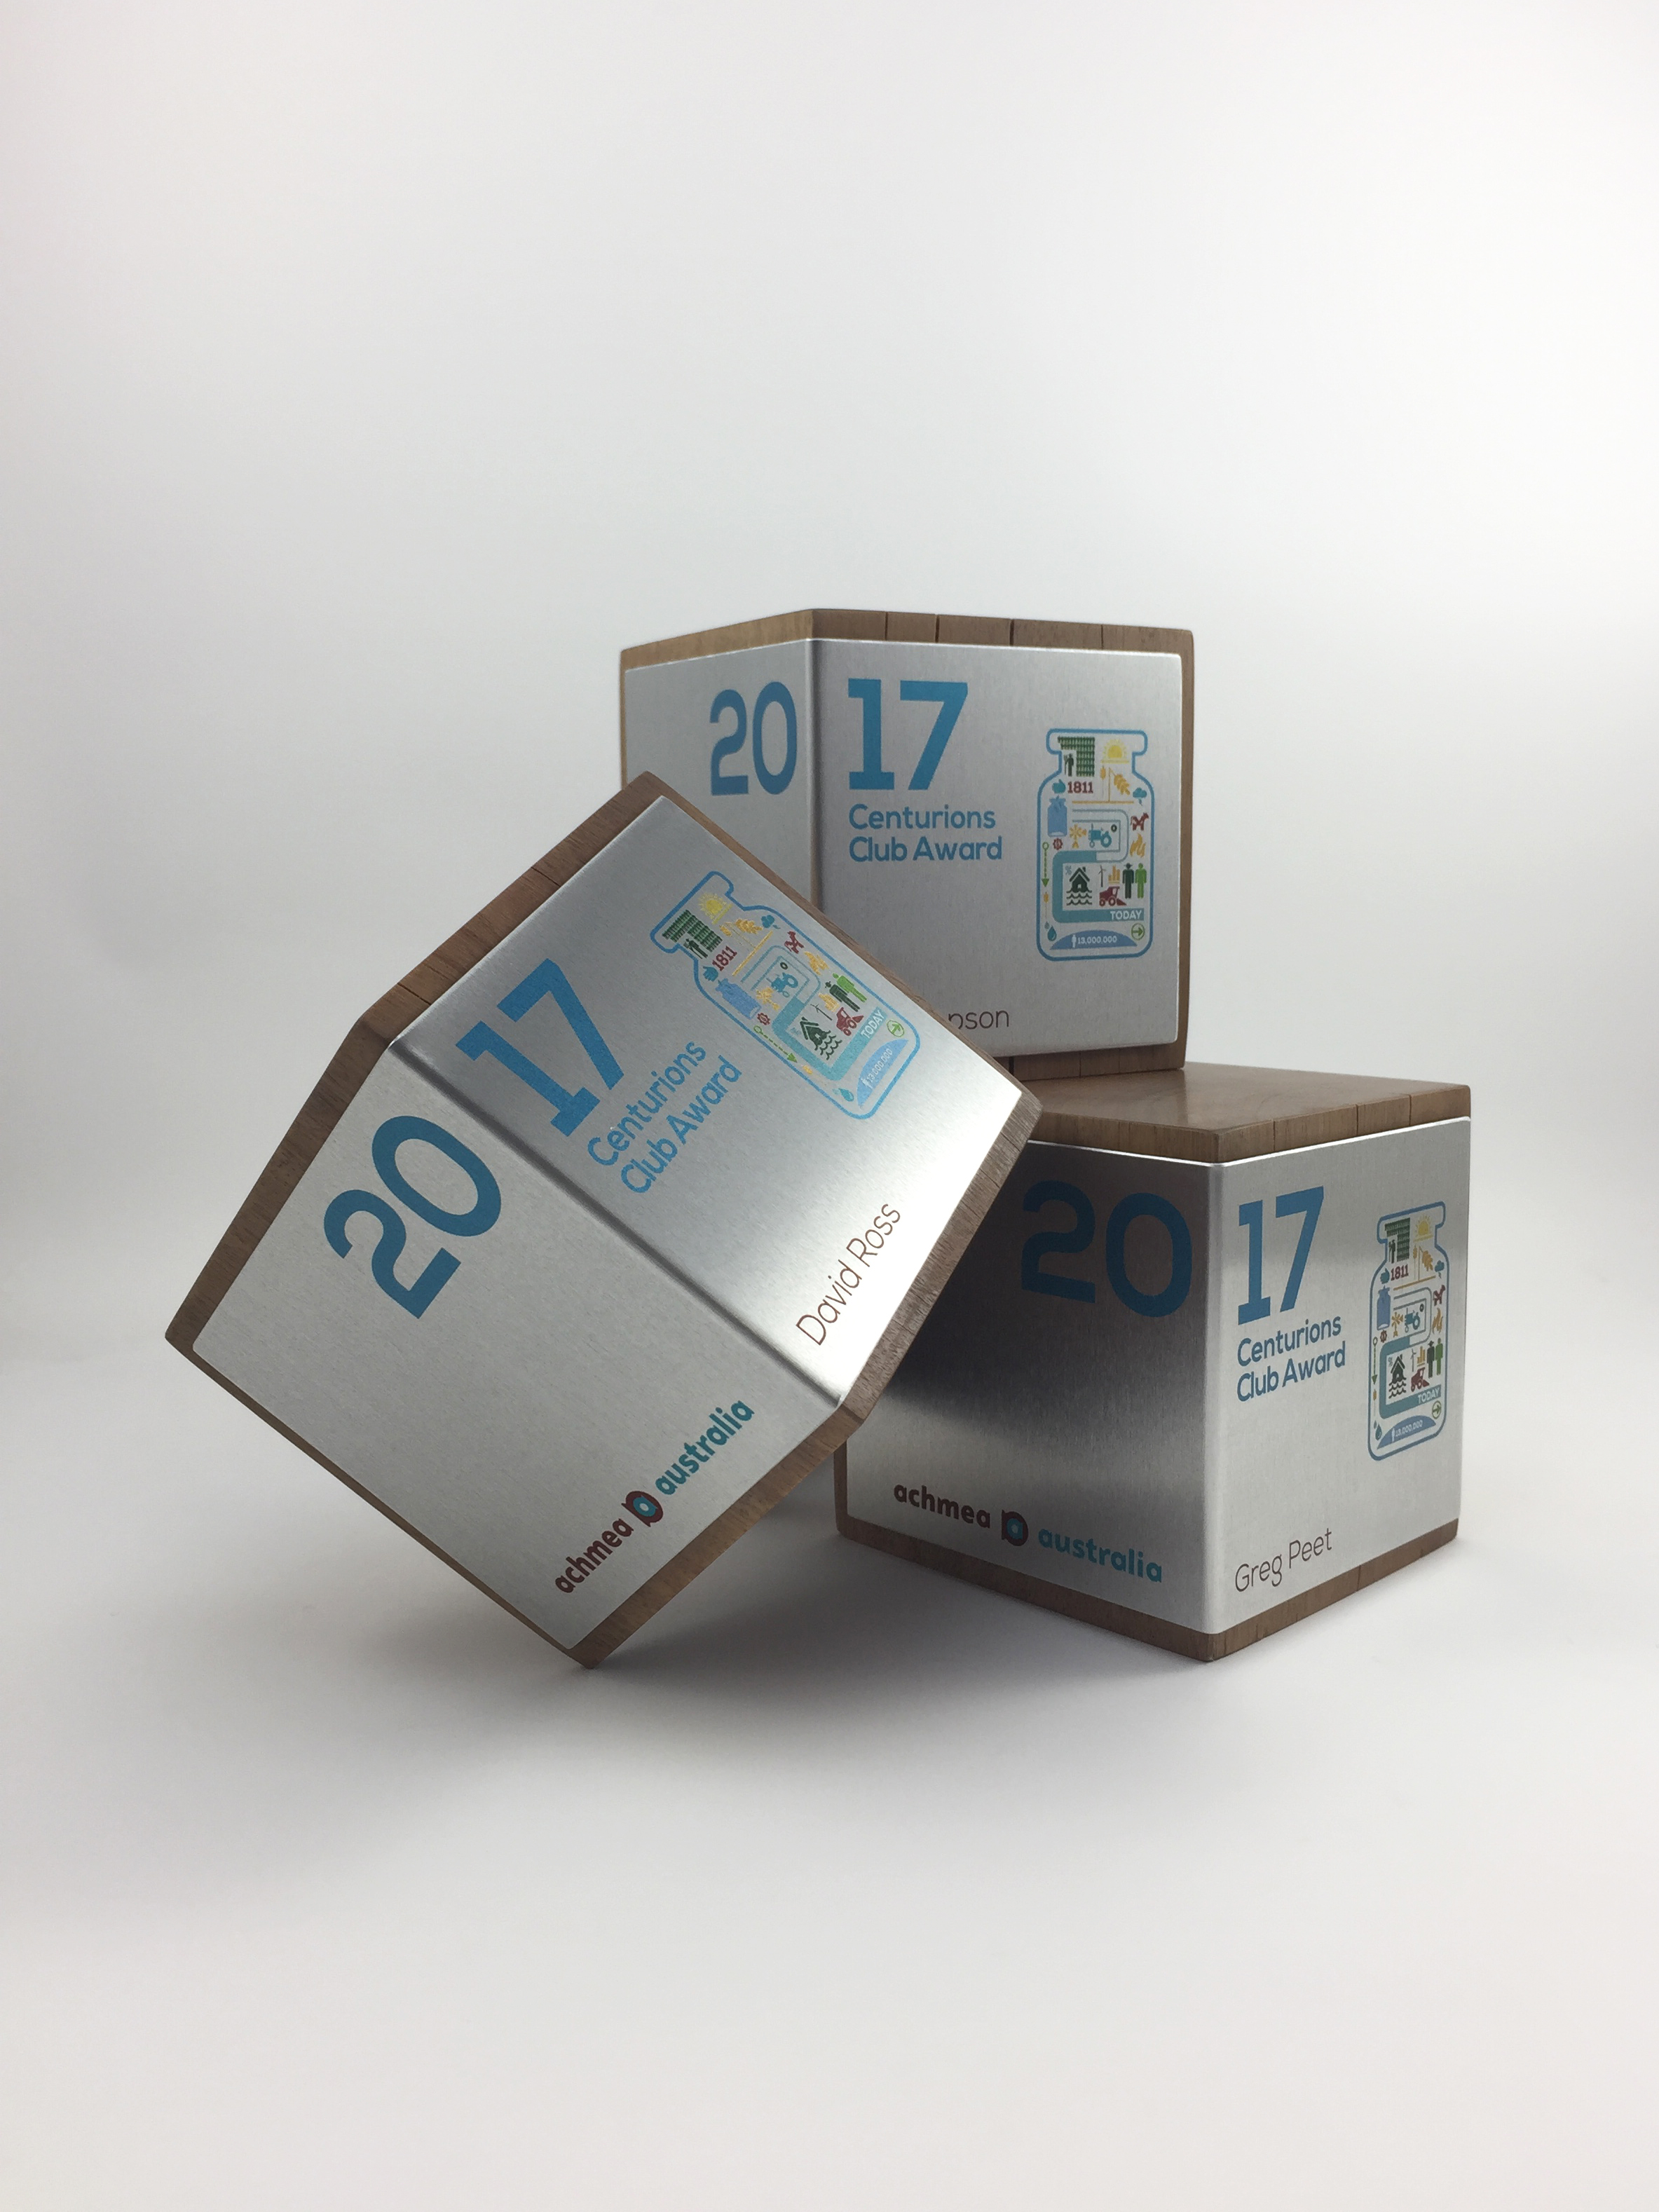 achmea-recycled-timber-cube-eco-metal-award-trophy-03.jpg